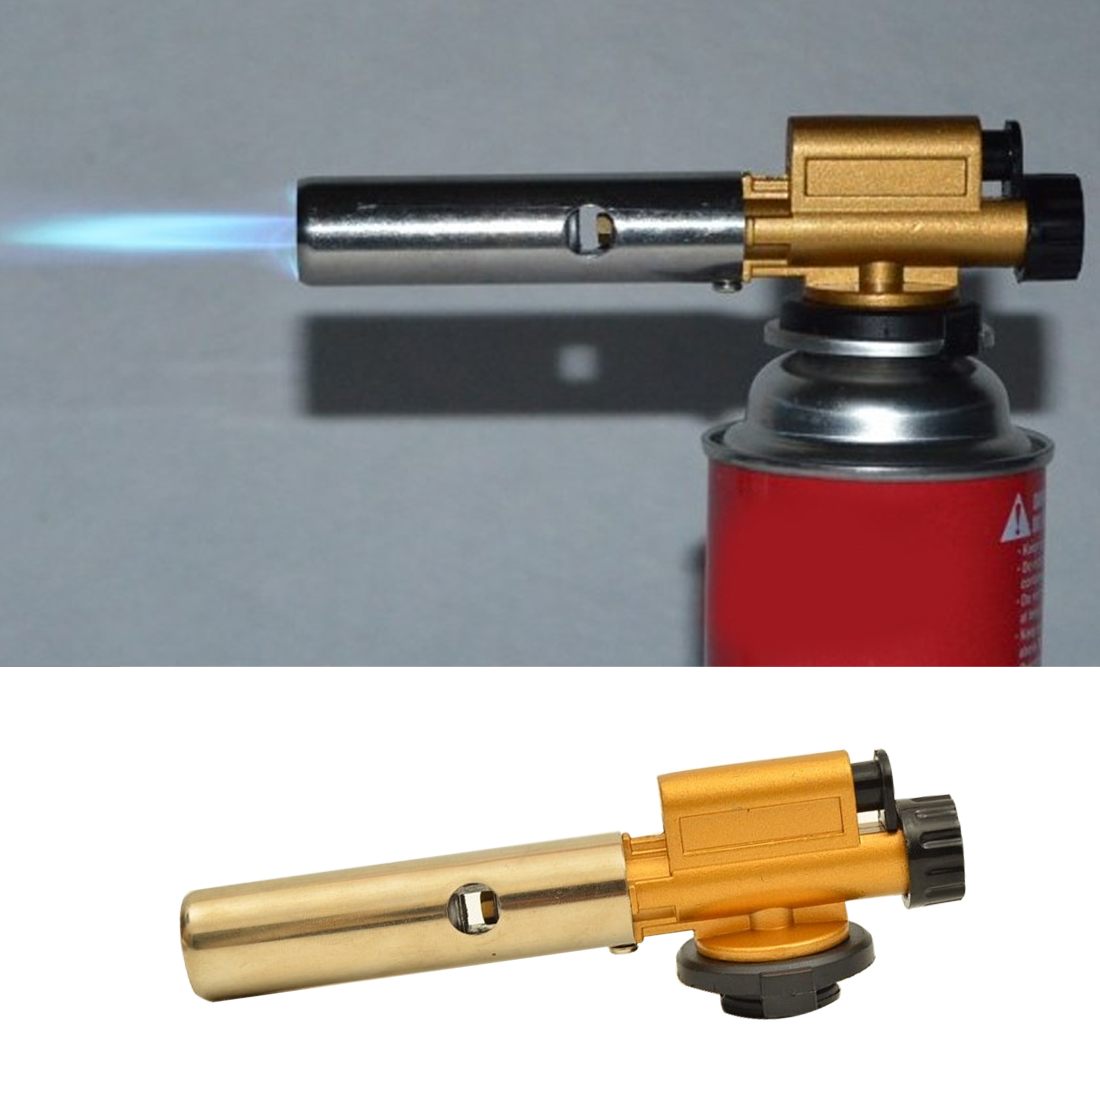 803 Metal Electronic Ignition Copper Flame Gun Butane Gas Burners Maker Torch Lighter For Outdoor Camping Picnic Cooking Welding803 Metal Electronic Ignition Copper Flame Gun Butane Gas Burners Maker Torch Lighter For Outdoor Camping Picnic Cooking Welding